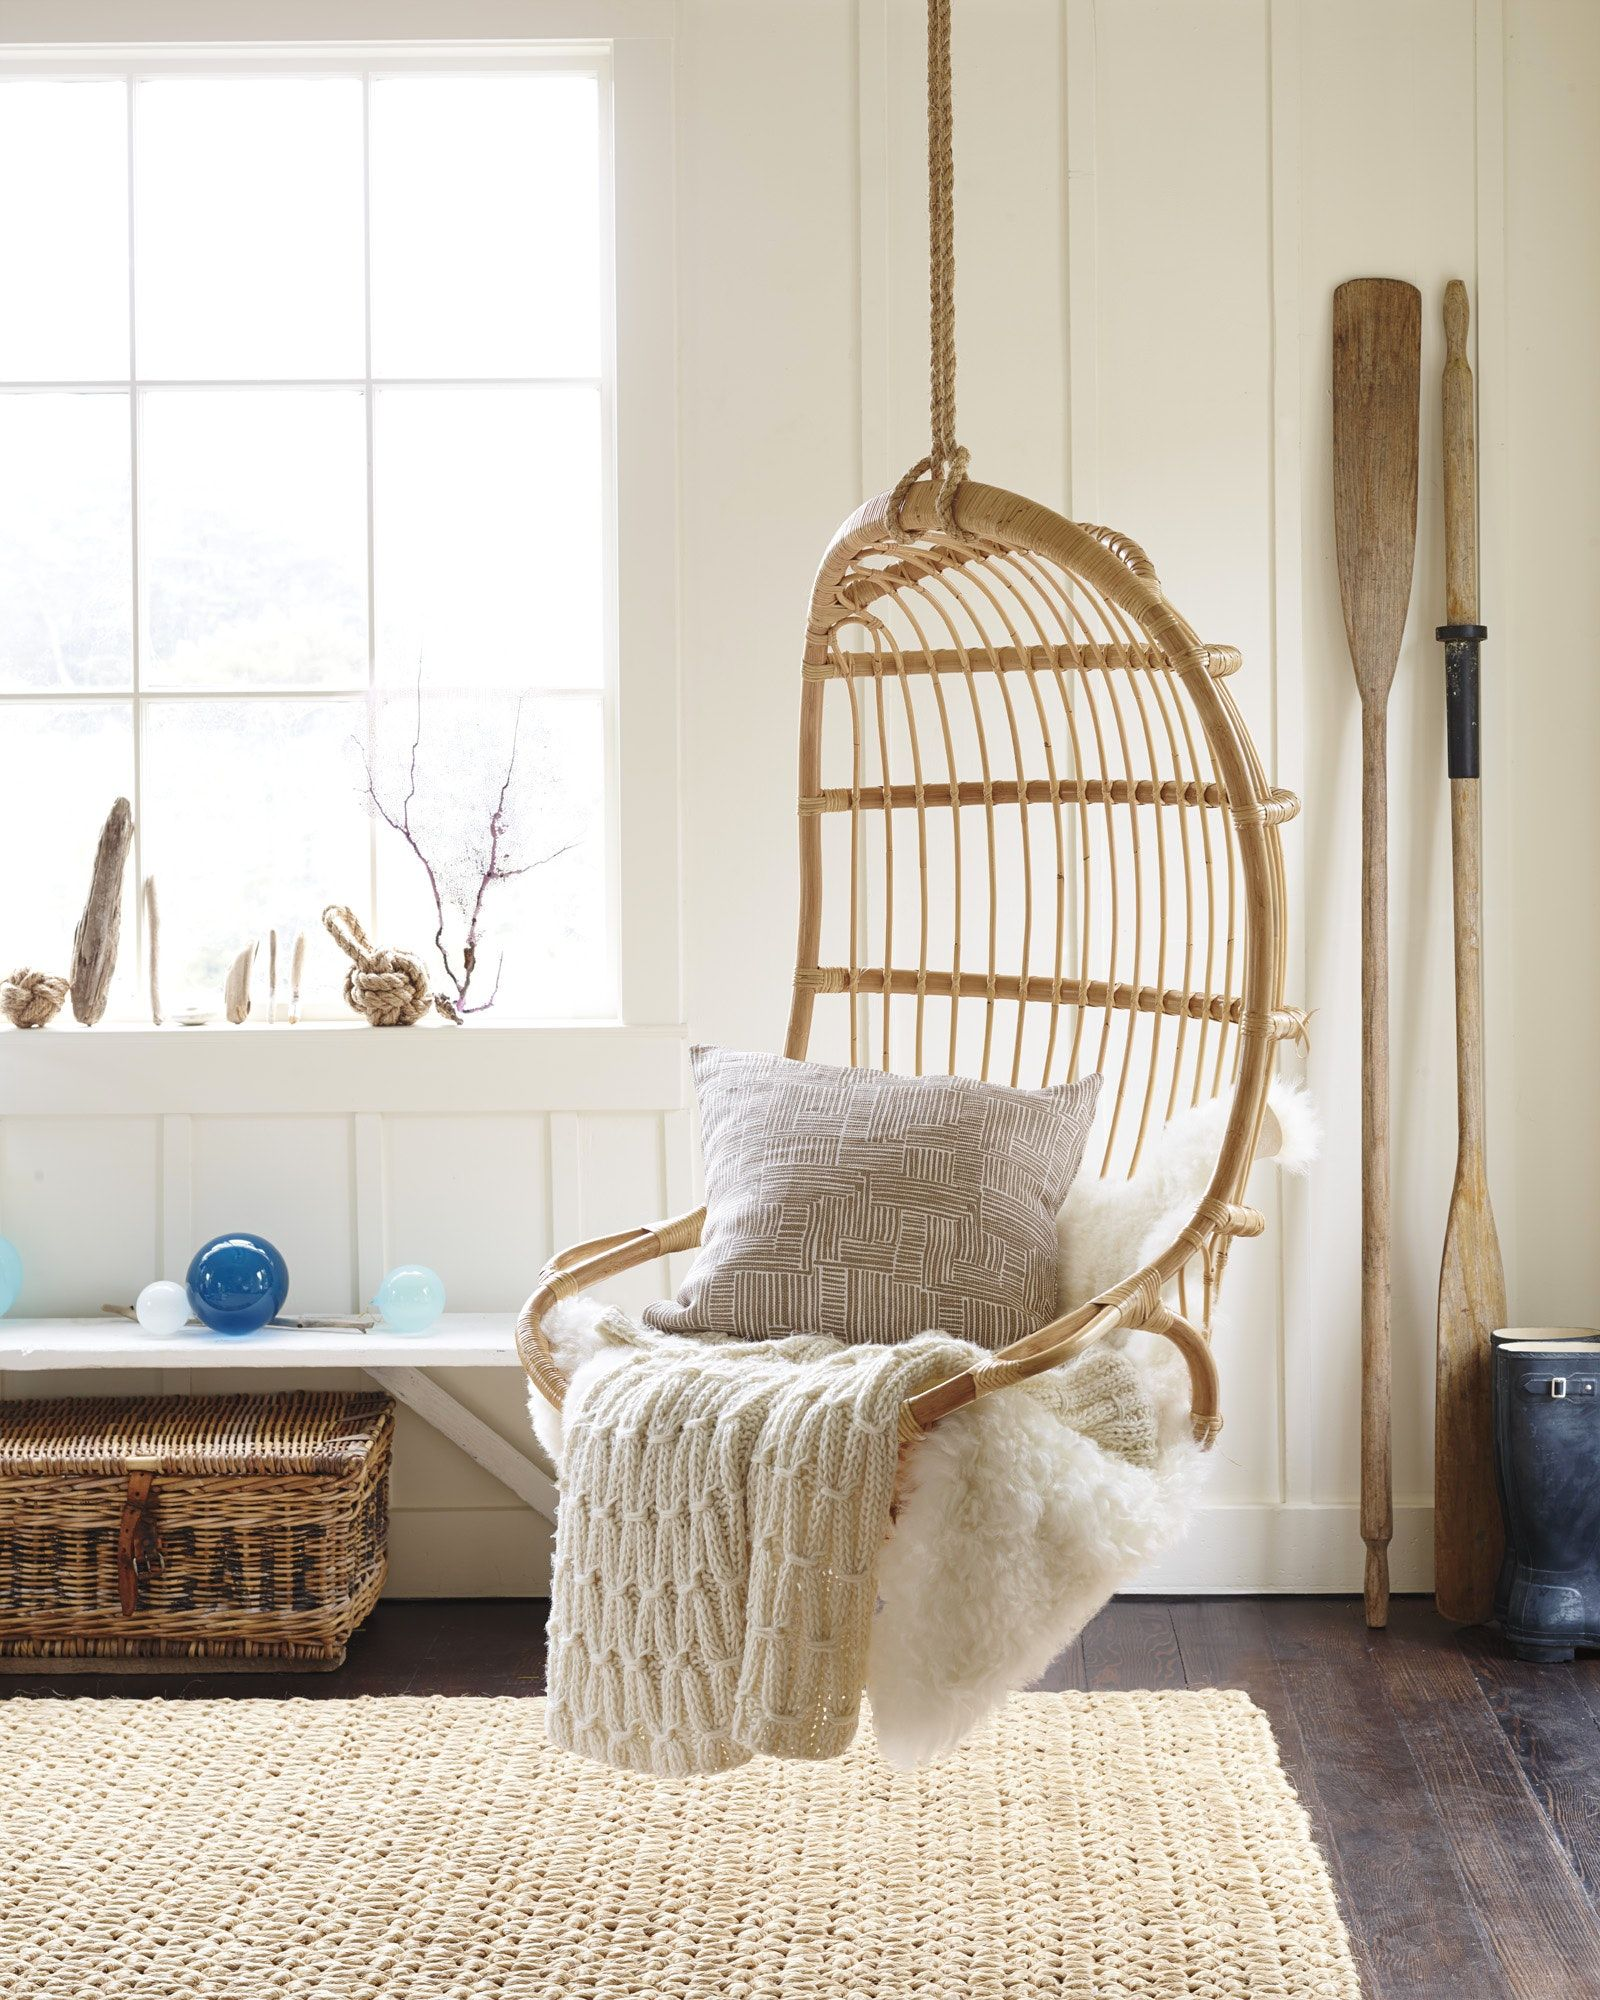 Image Result For Rattan Chair Hanging From Ceiling Bedroom Hanging Chair Hanging Rattan Chair Diy Hanging Chair